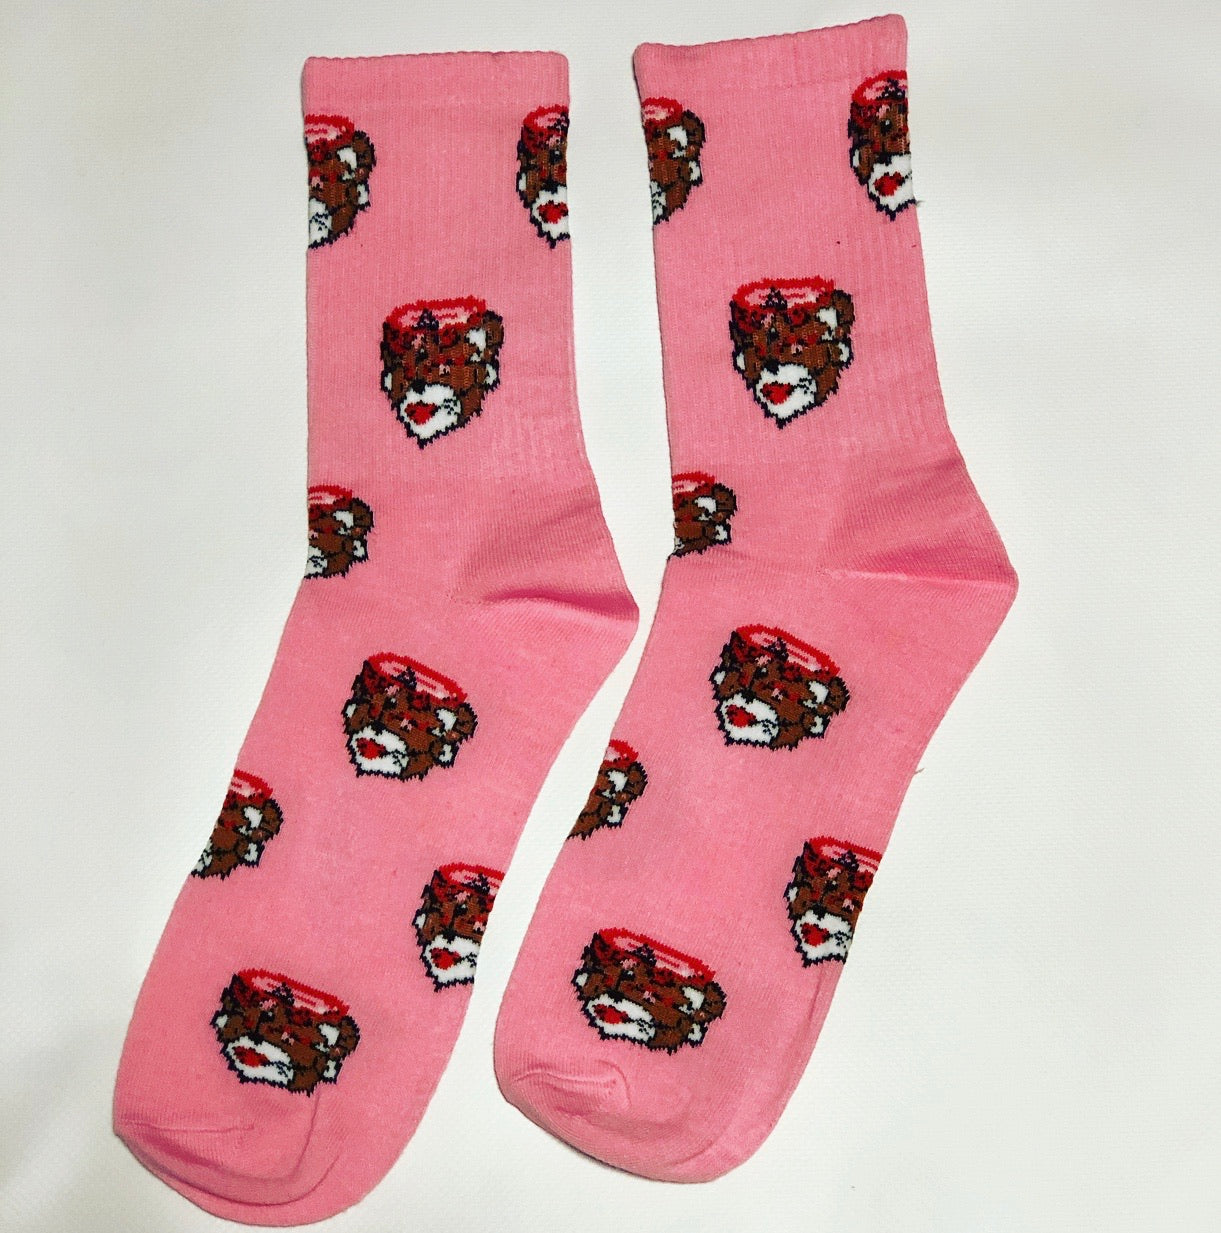 Adult female socks